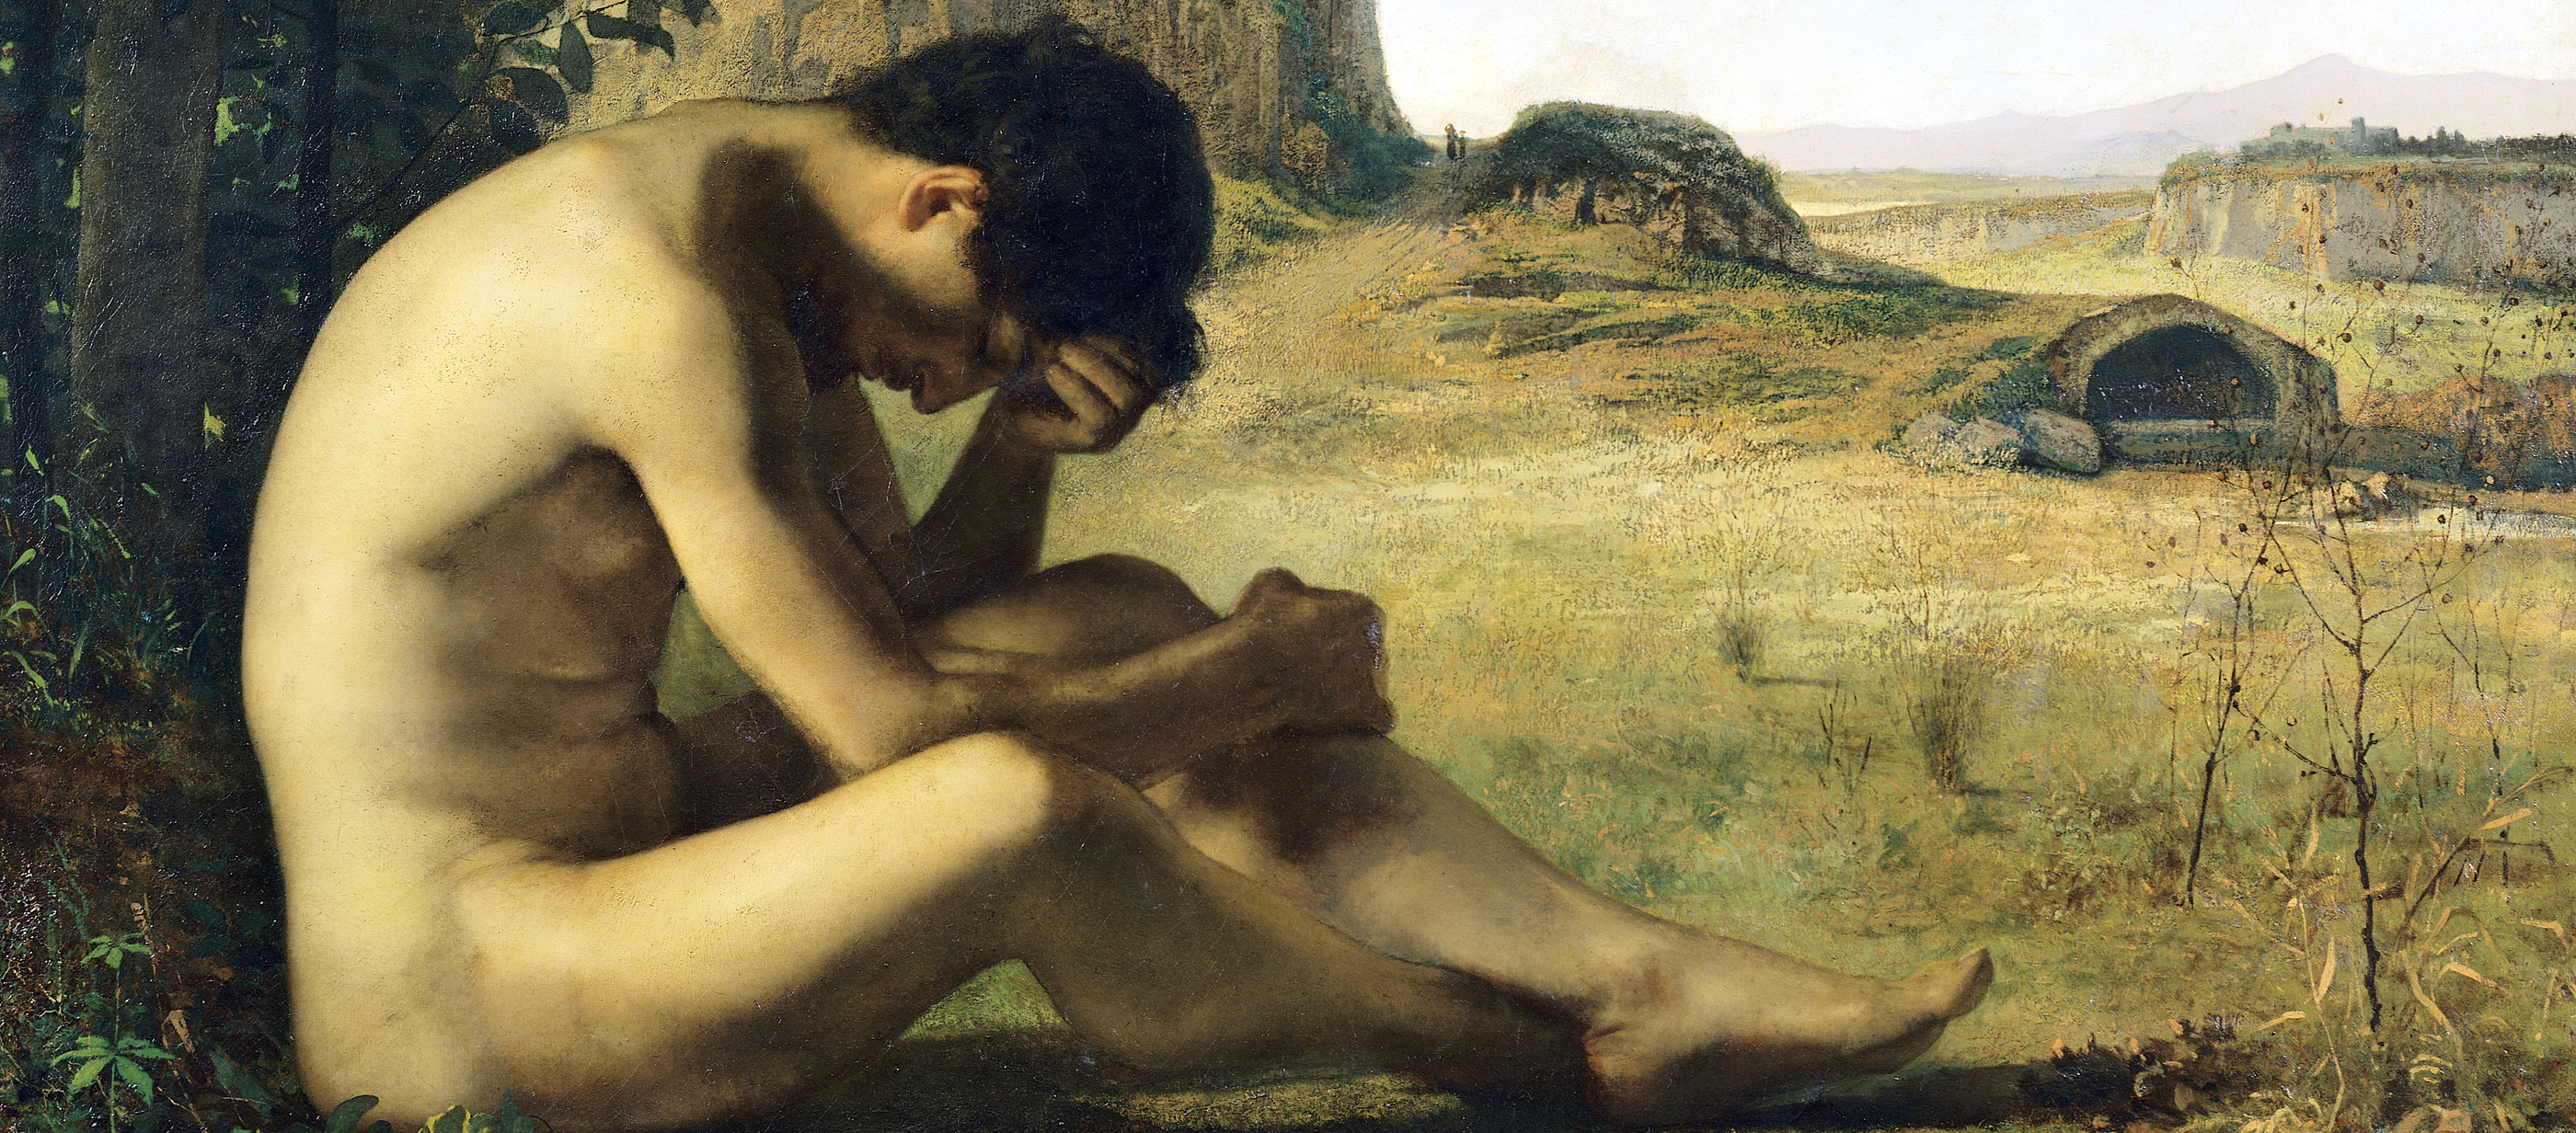 Painting of a reclining nude young man.